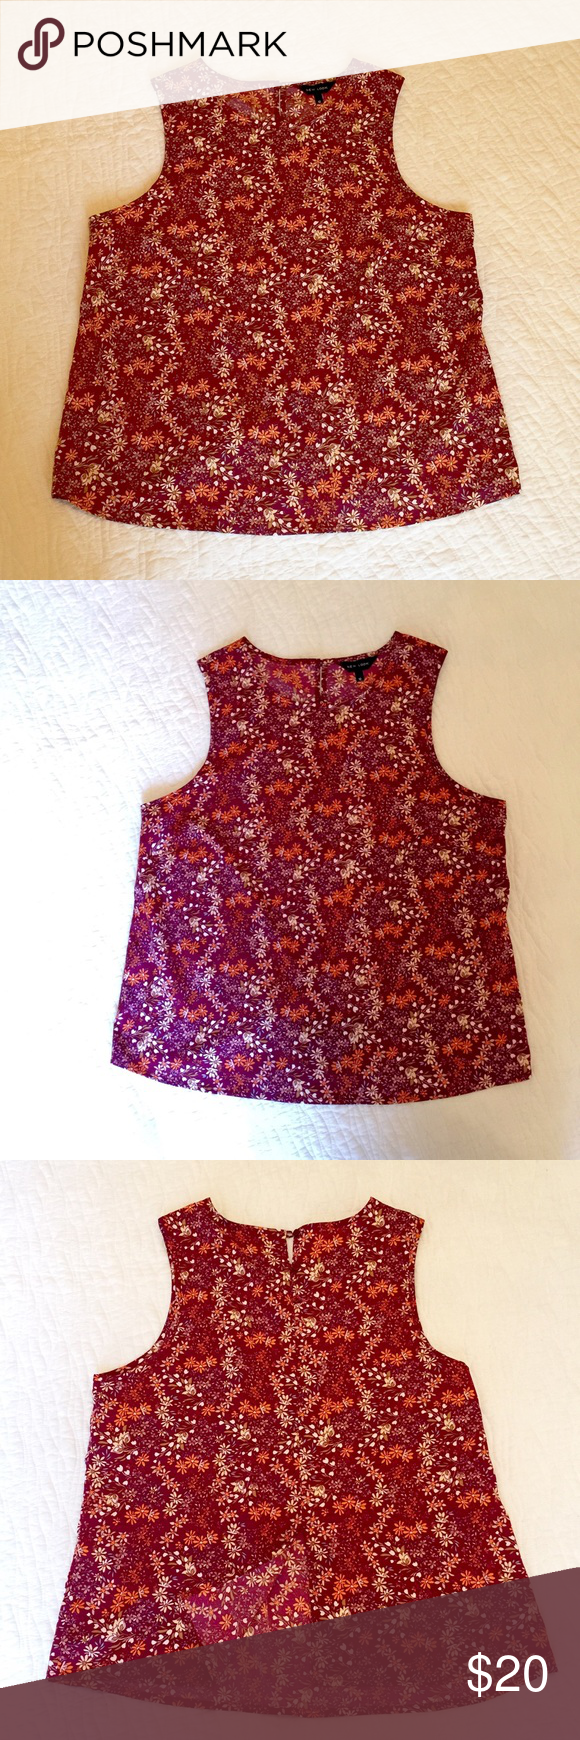 Printed blouse Cute blouse in maroon with white and yellow flower print. Size L. Length: 23 inches. Worn once. Slit on the back (see the last picture). Unlined, light and airy top. Tops Blouses